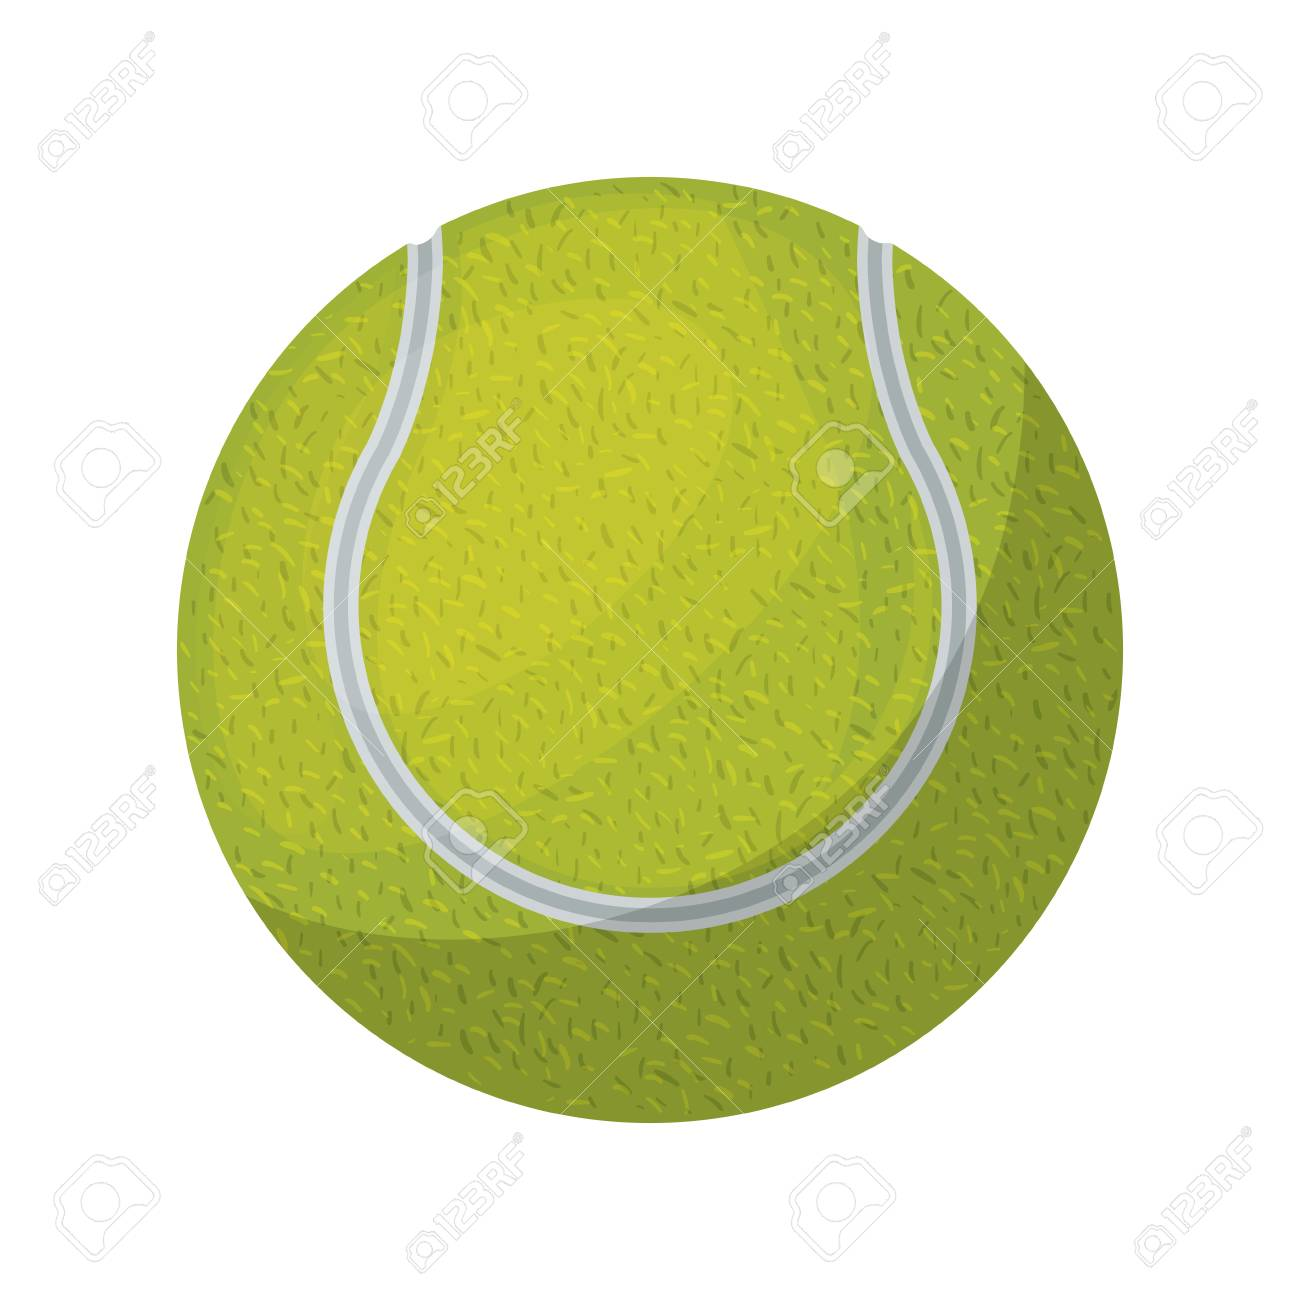 Silhouette Color With Tennis Ball Vector Illustration Royalty Free